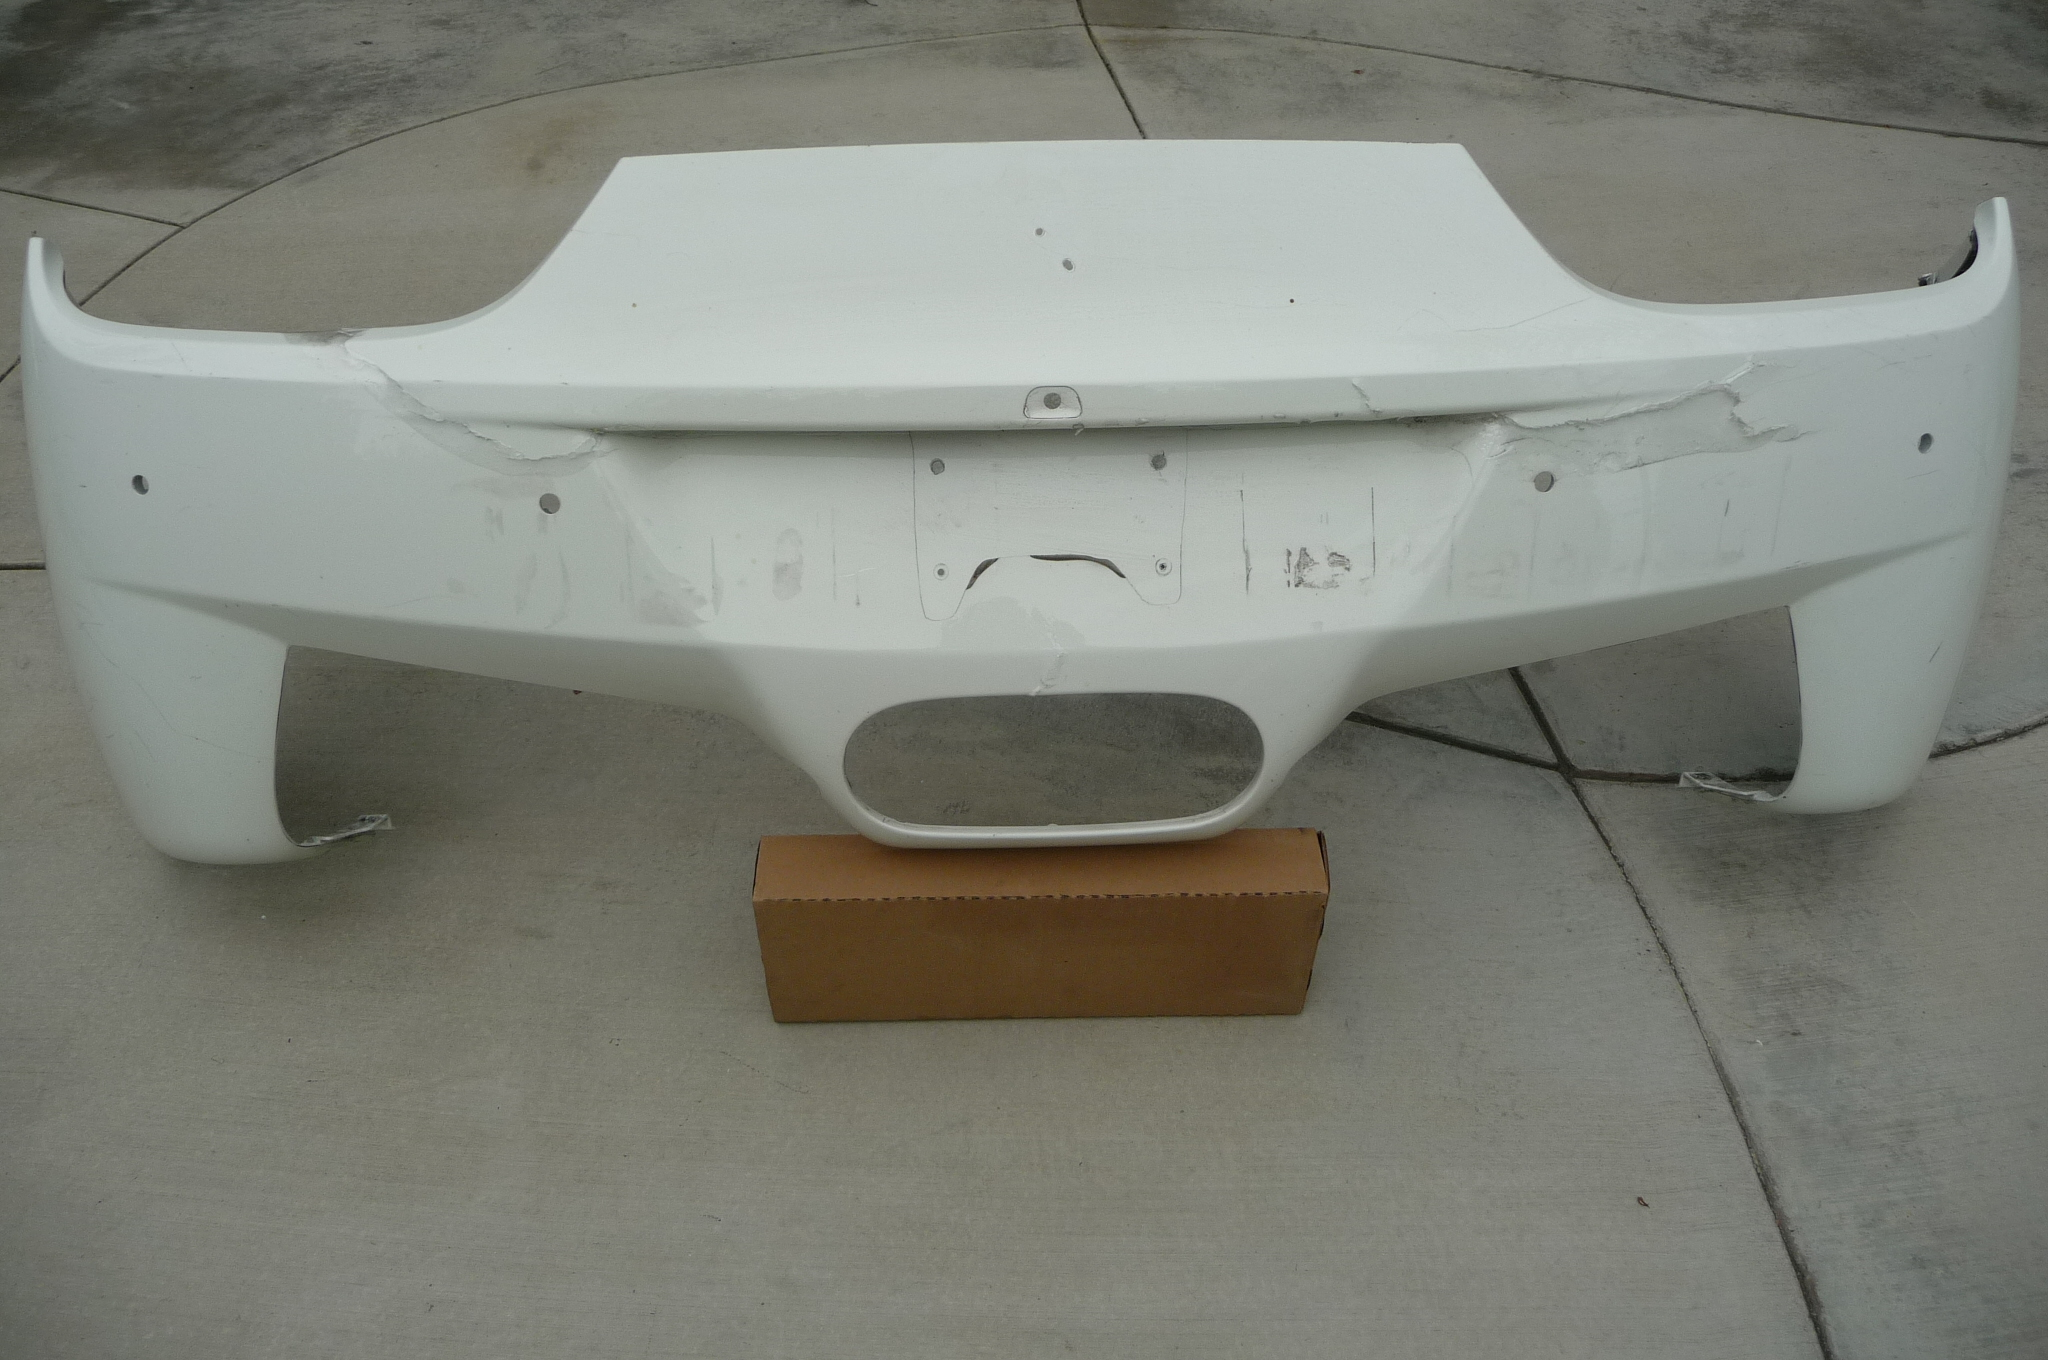 Ferrari 458 Italia Challenge Rear Bumper 83327510 with PDC for Parts OEM OE - Used Auto Parts Store | LA Global Parts